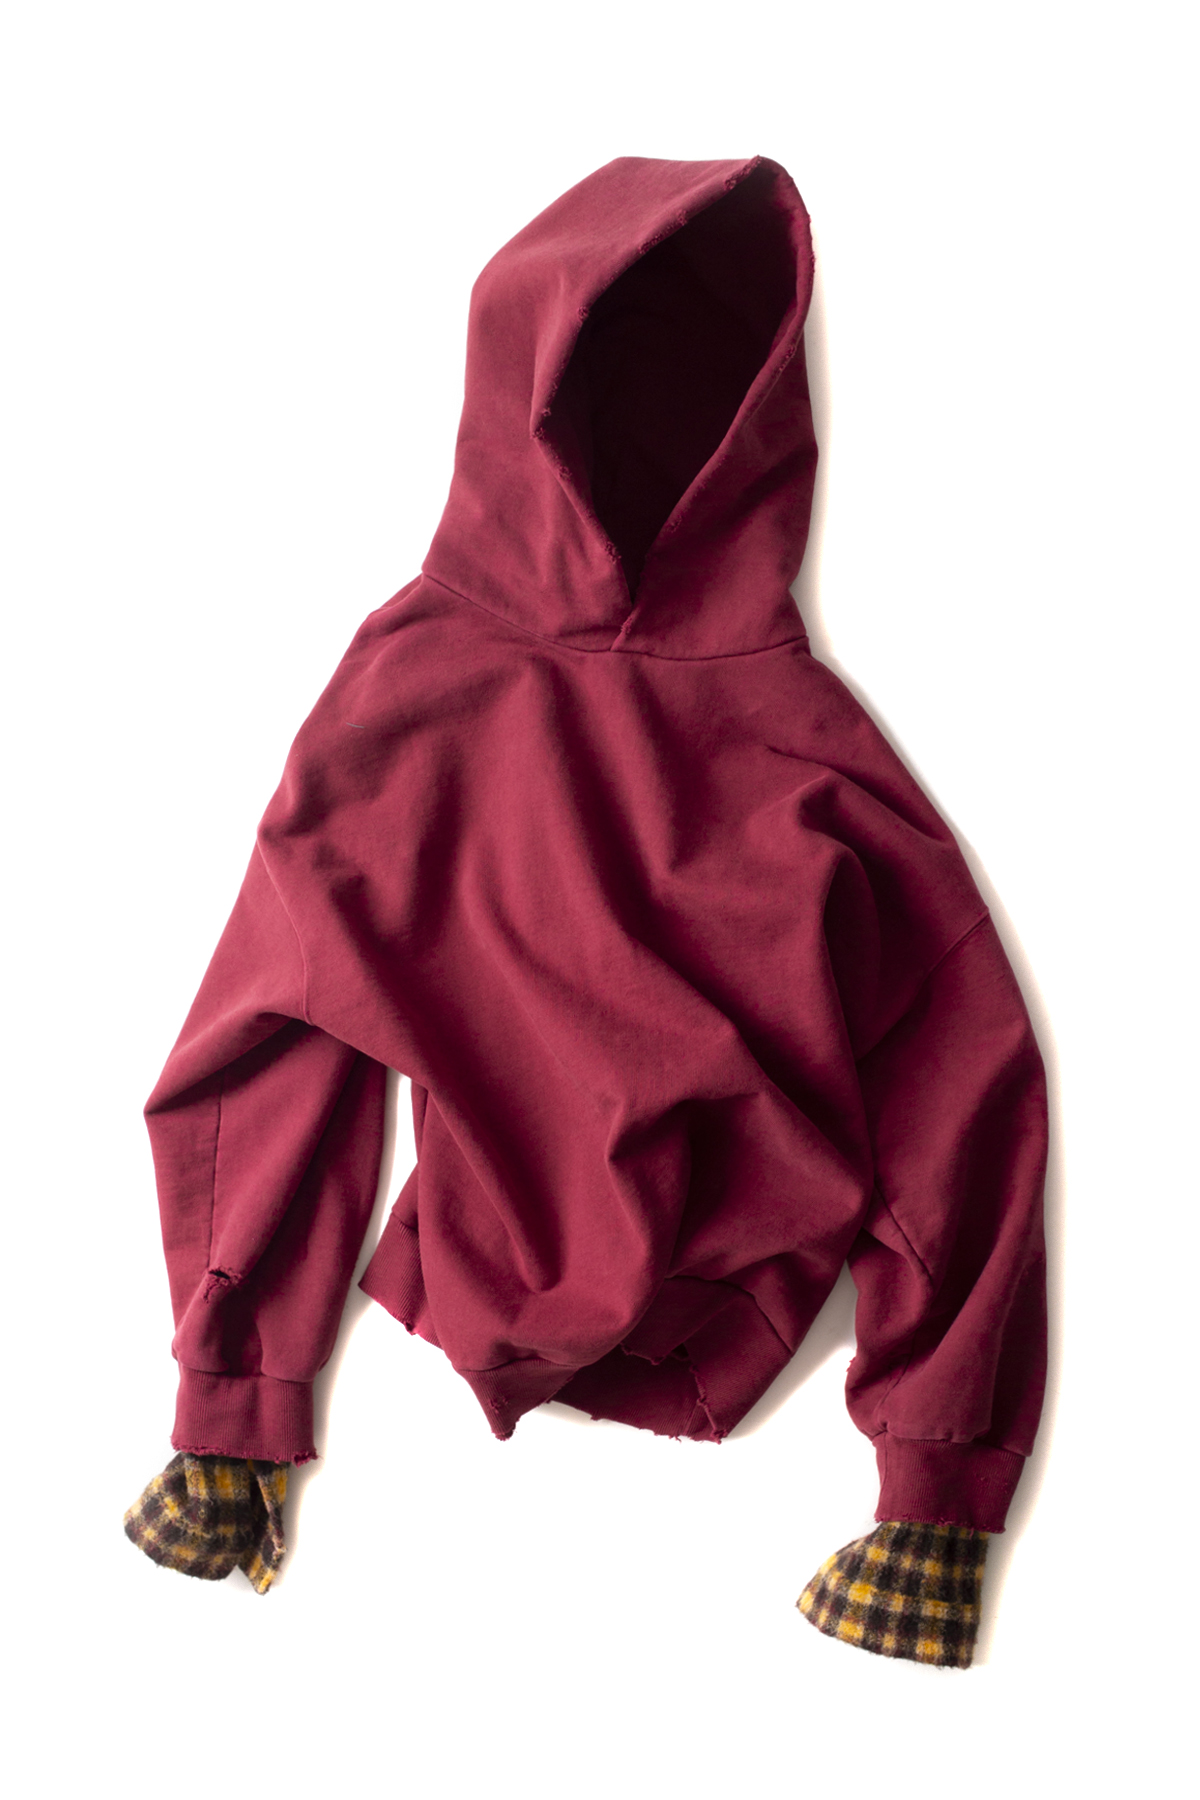 BIRTHDAYSUIT : Wool Check Oversized Hoody (Burgundy)